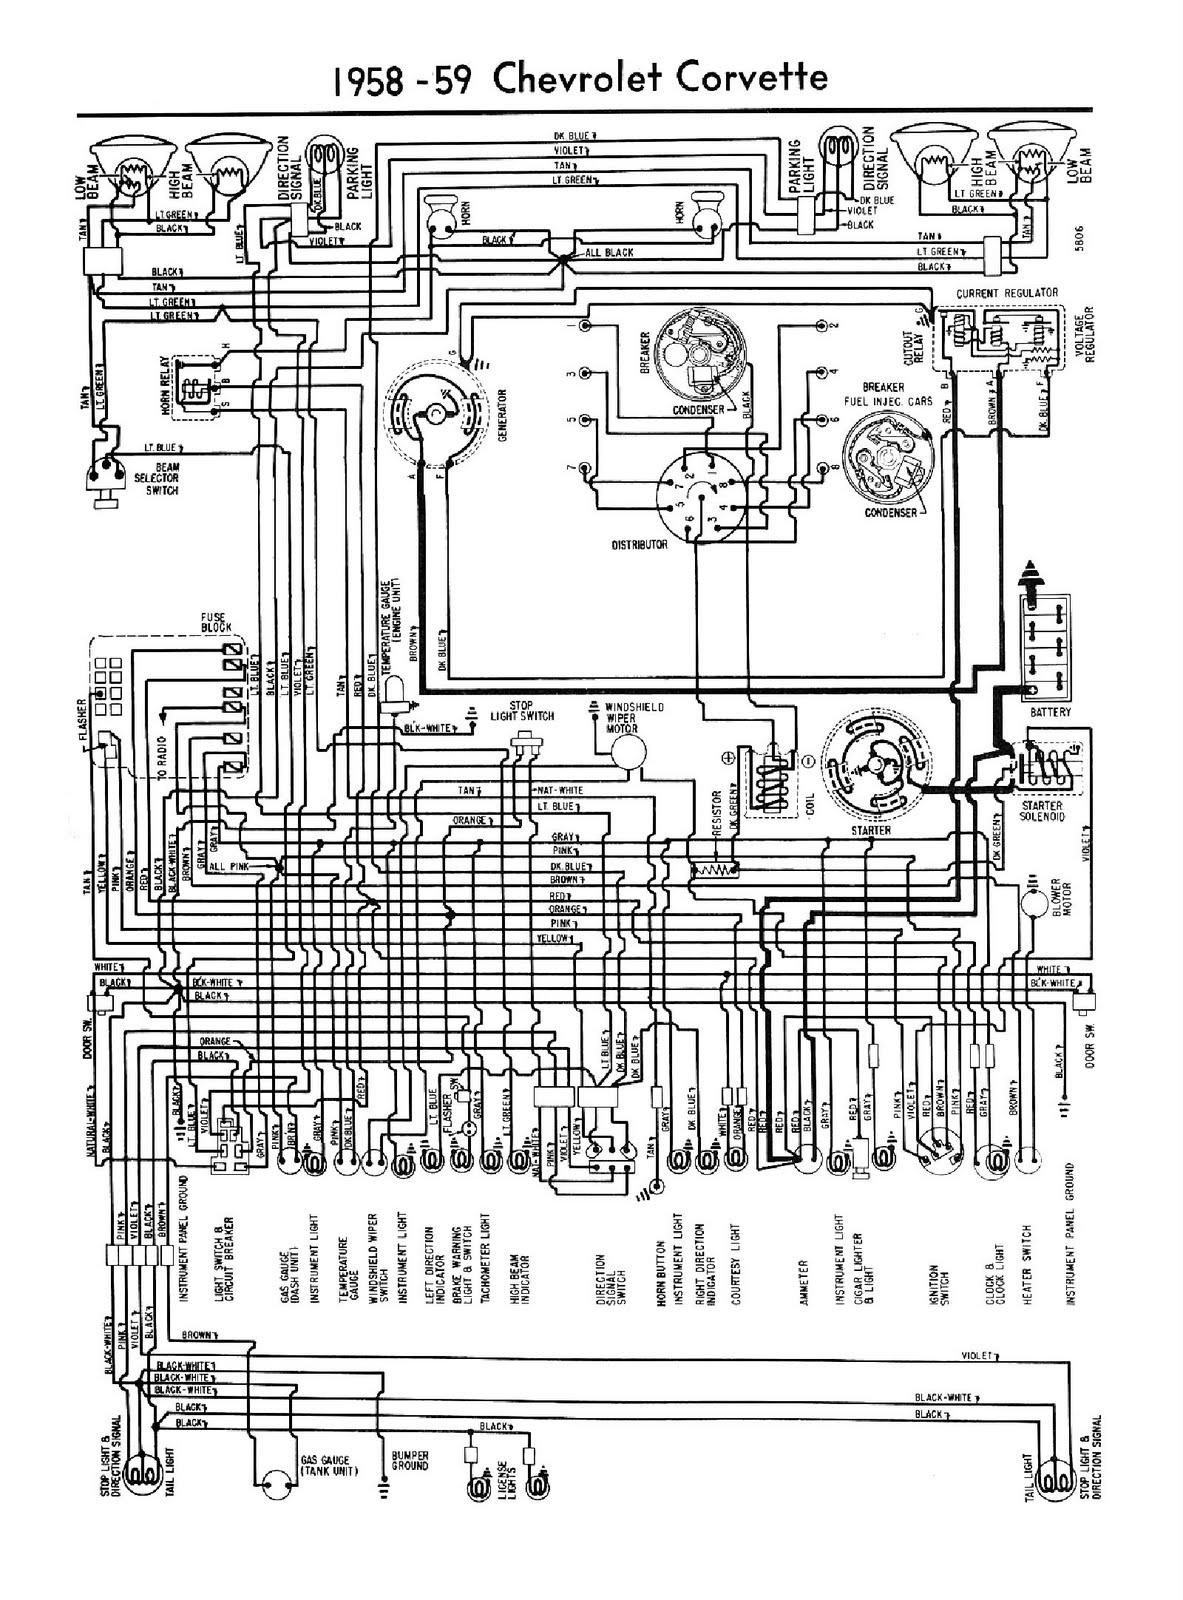 1958 oldsmobile ignition switch wiring diagram 1960 ford 1958 ford engine wiring #14